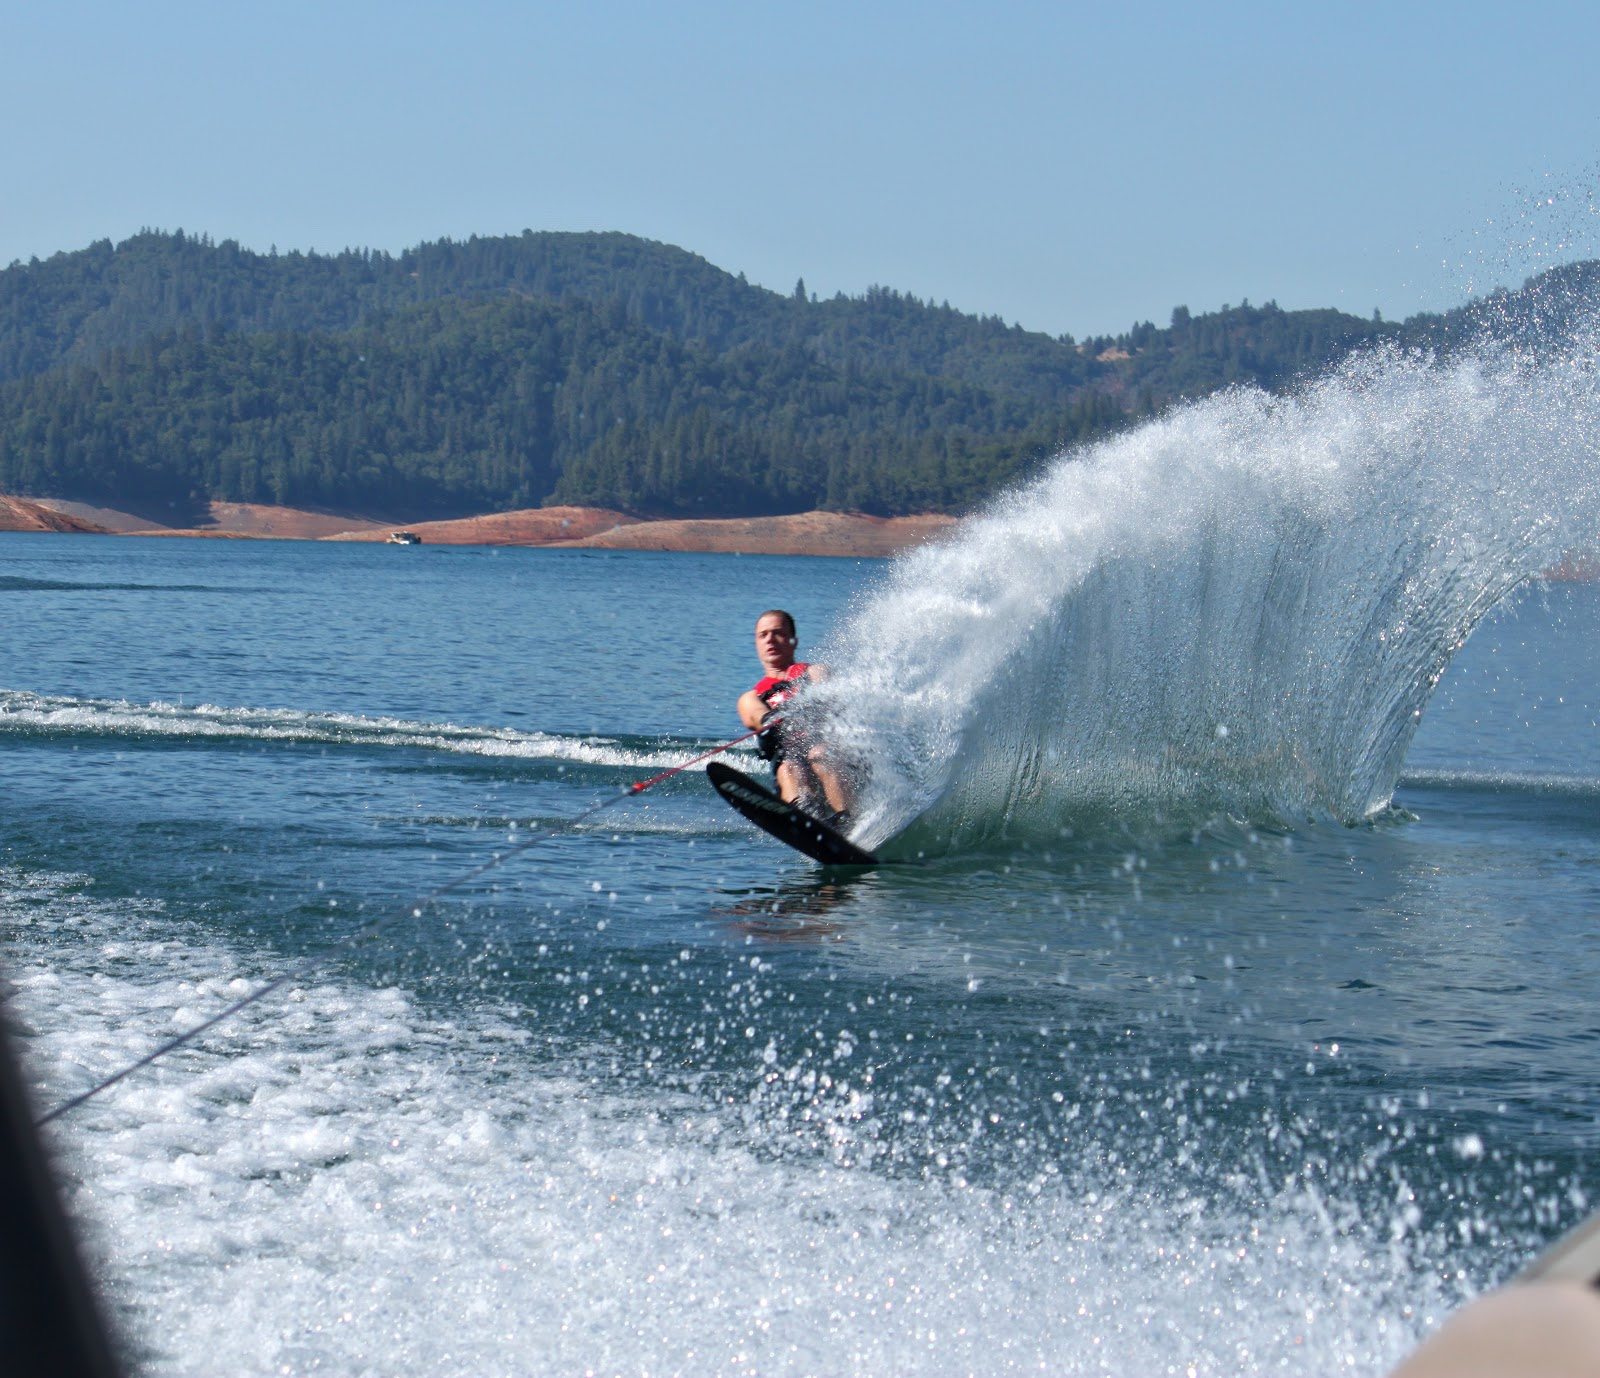 Lake Shasta: The Wilson Family: Lake Shasta Camping